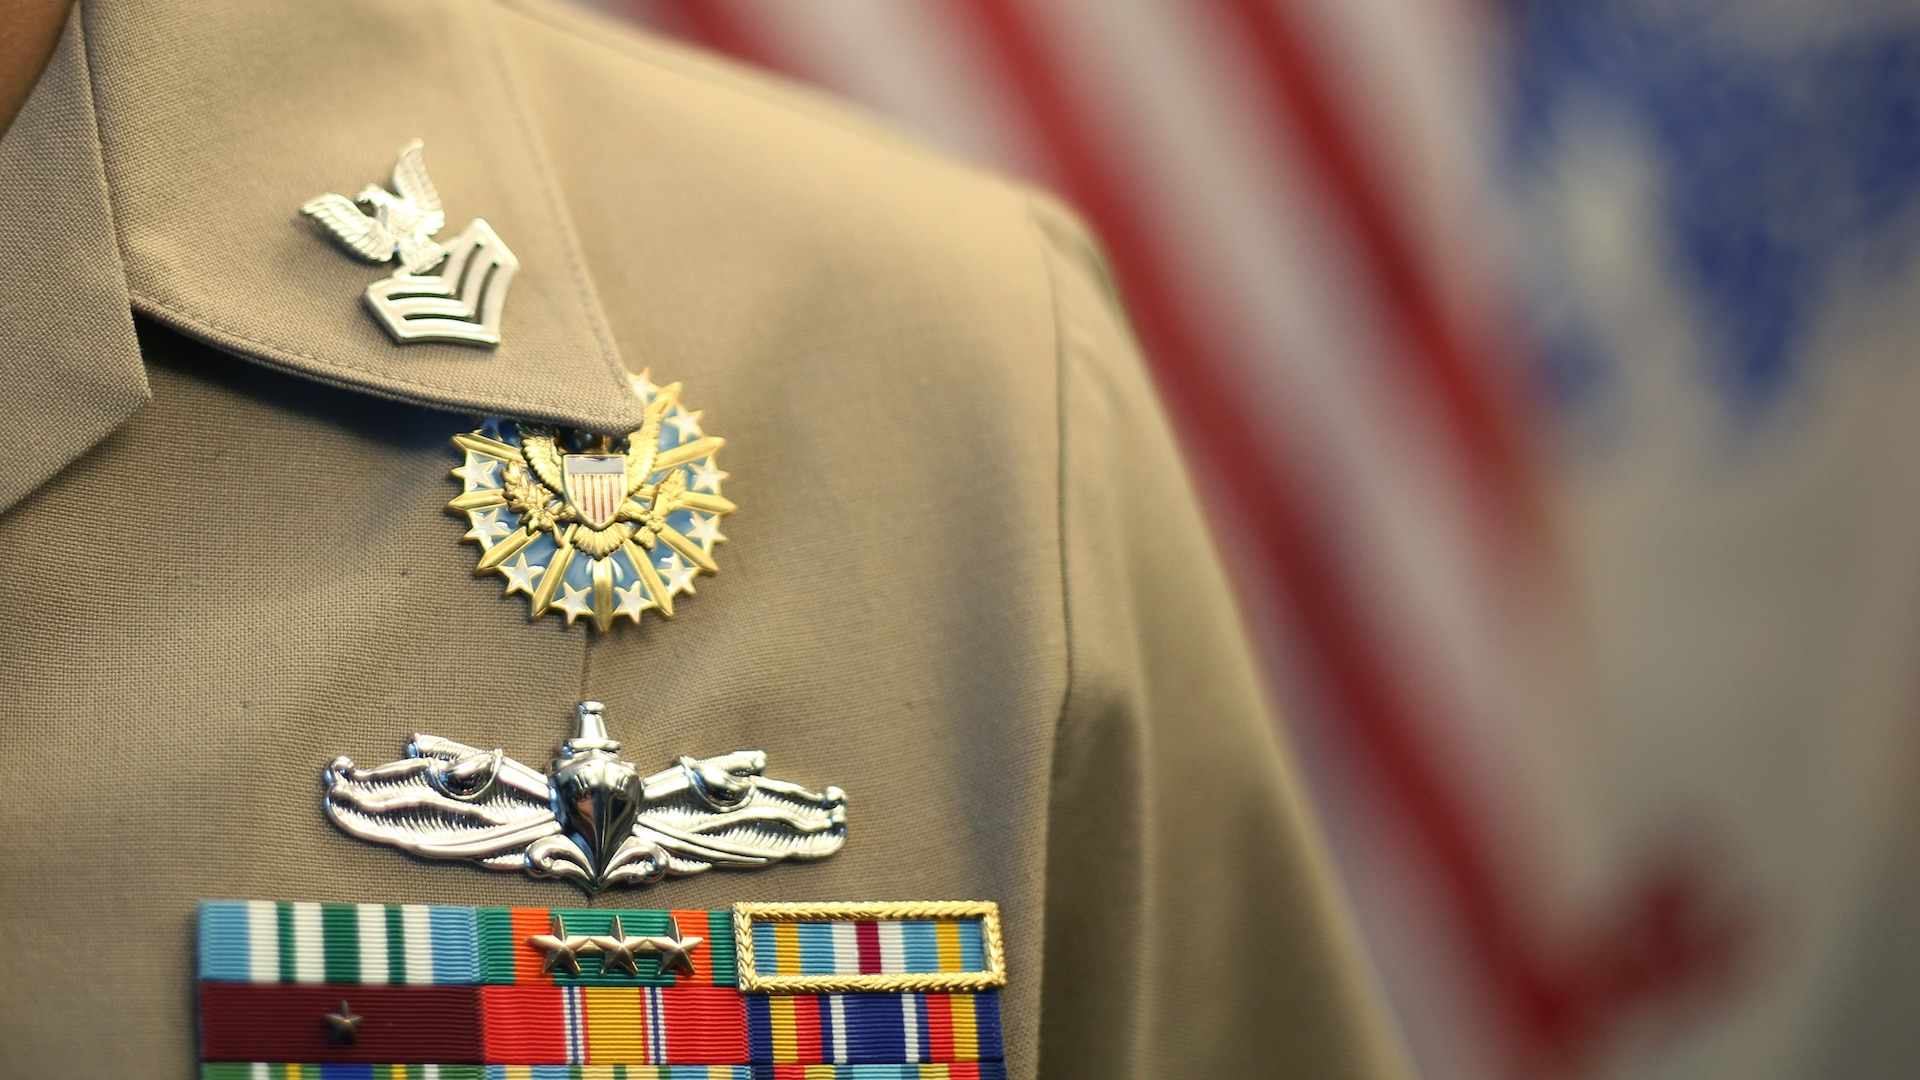 An approved duty badge is now available for Defense Contract Management Agency military personnel to wear while assigned to the organization. The device is considered a temporary badge and is not intended to be worn upon termination of assignment to the agency. (DCMA photo by Elizabeth Szoke)